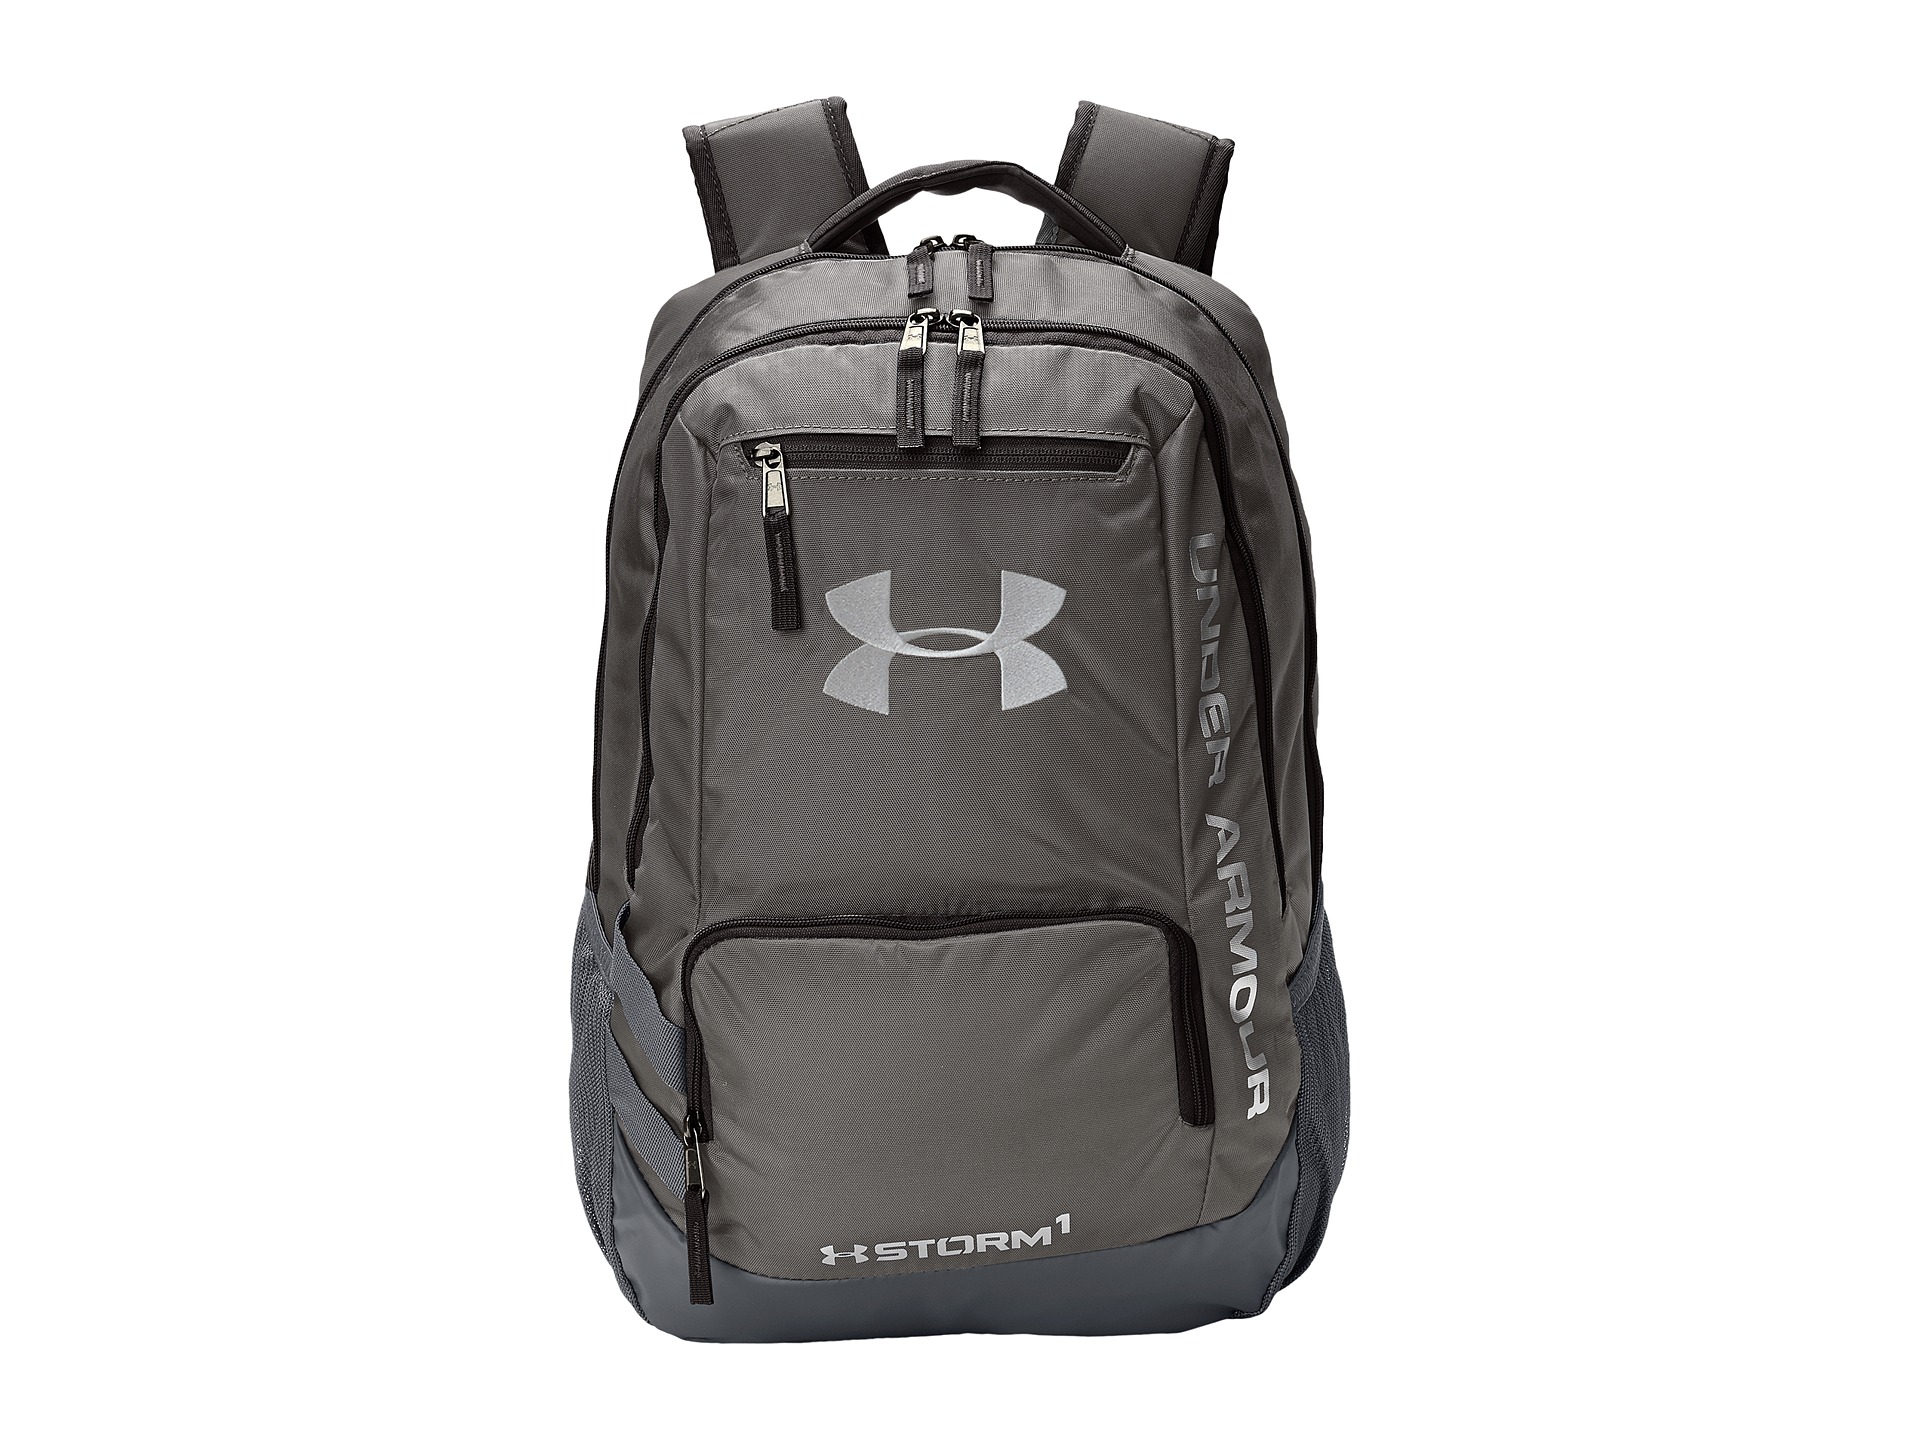 under armour hustle backpack black cheap   OFF35% The Largest ... 9e6b0481f86e6